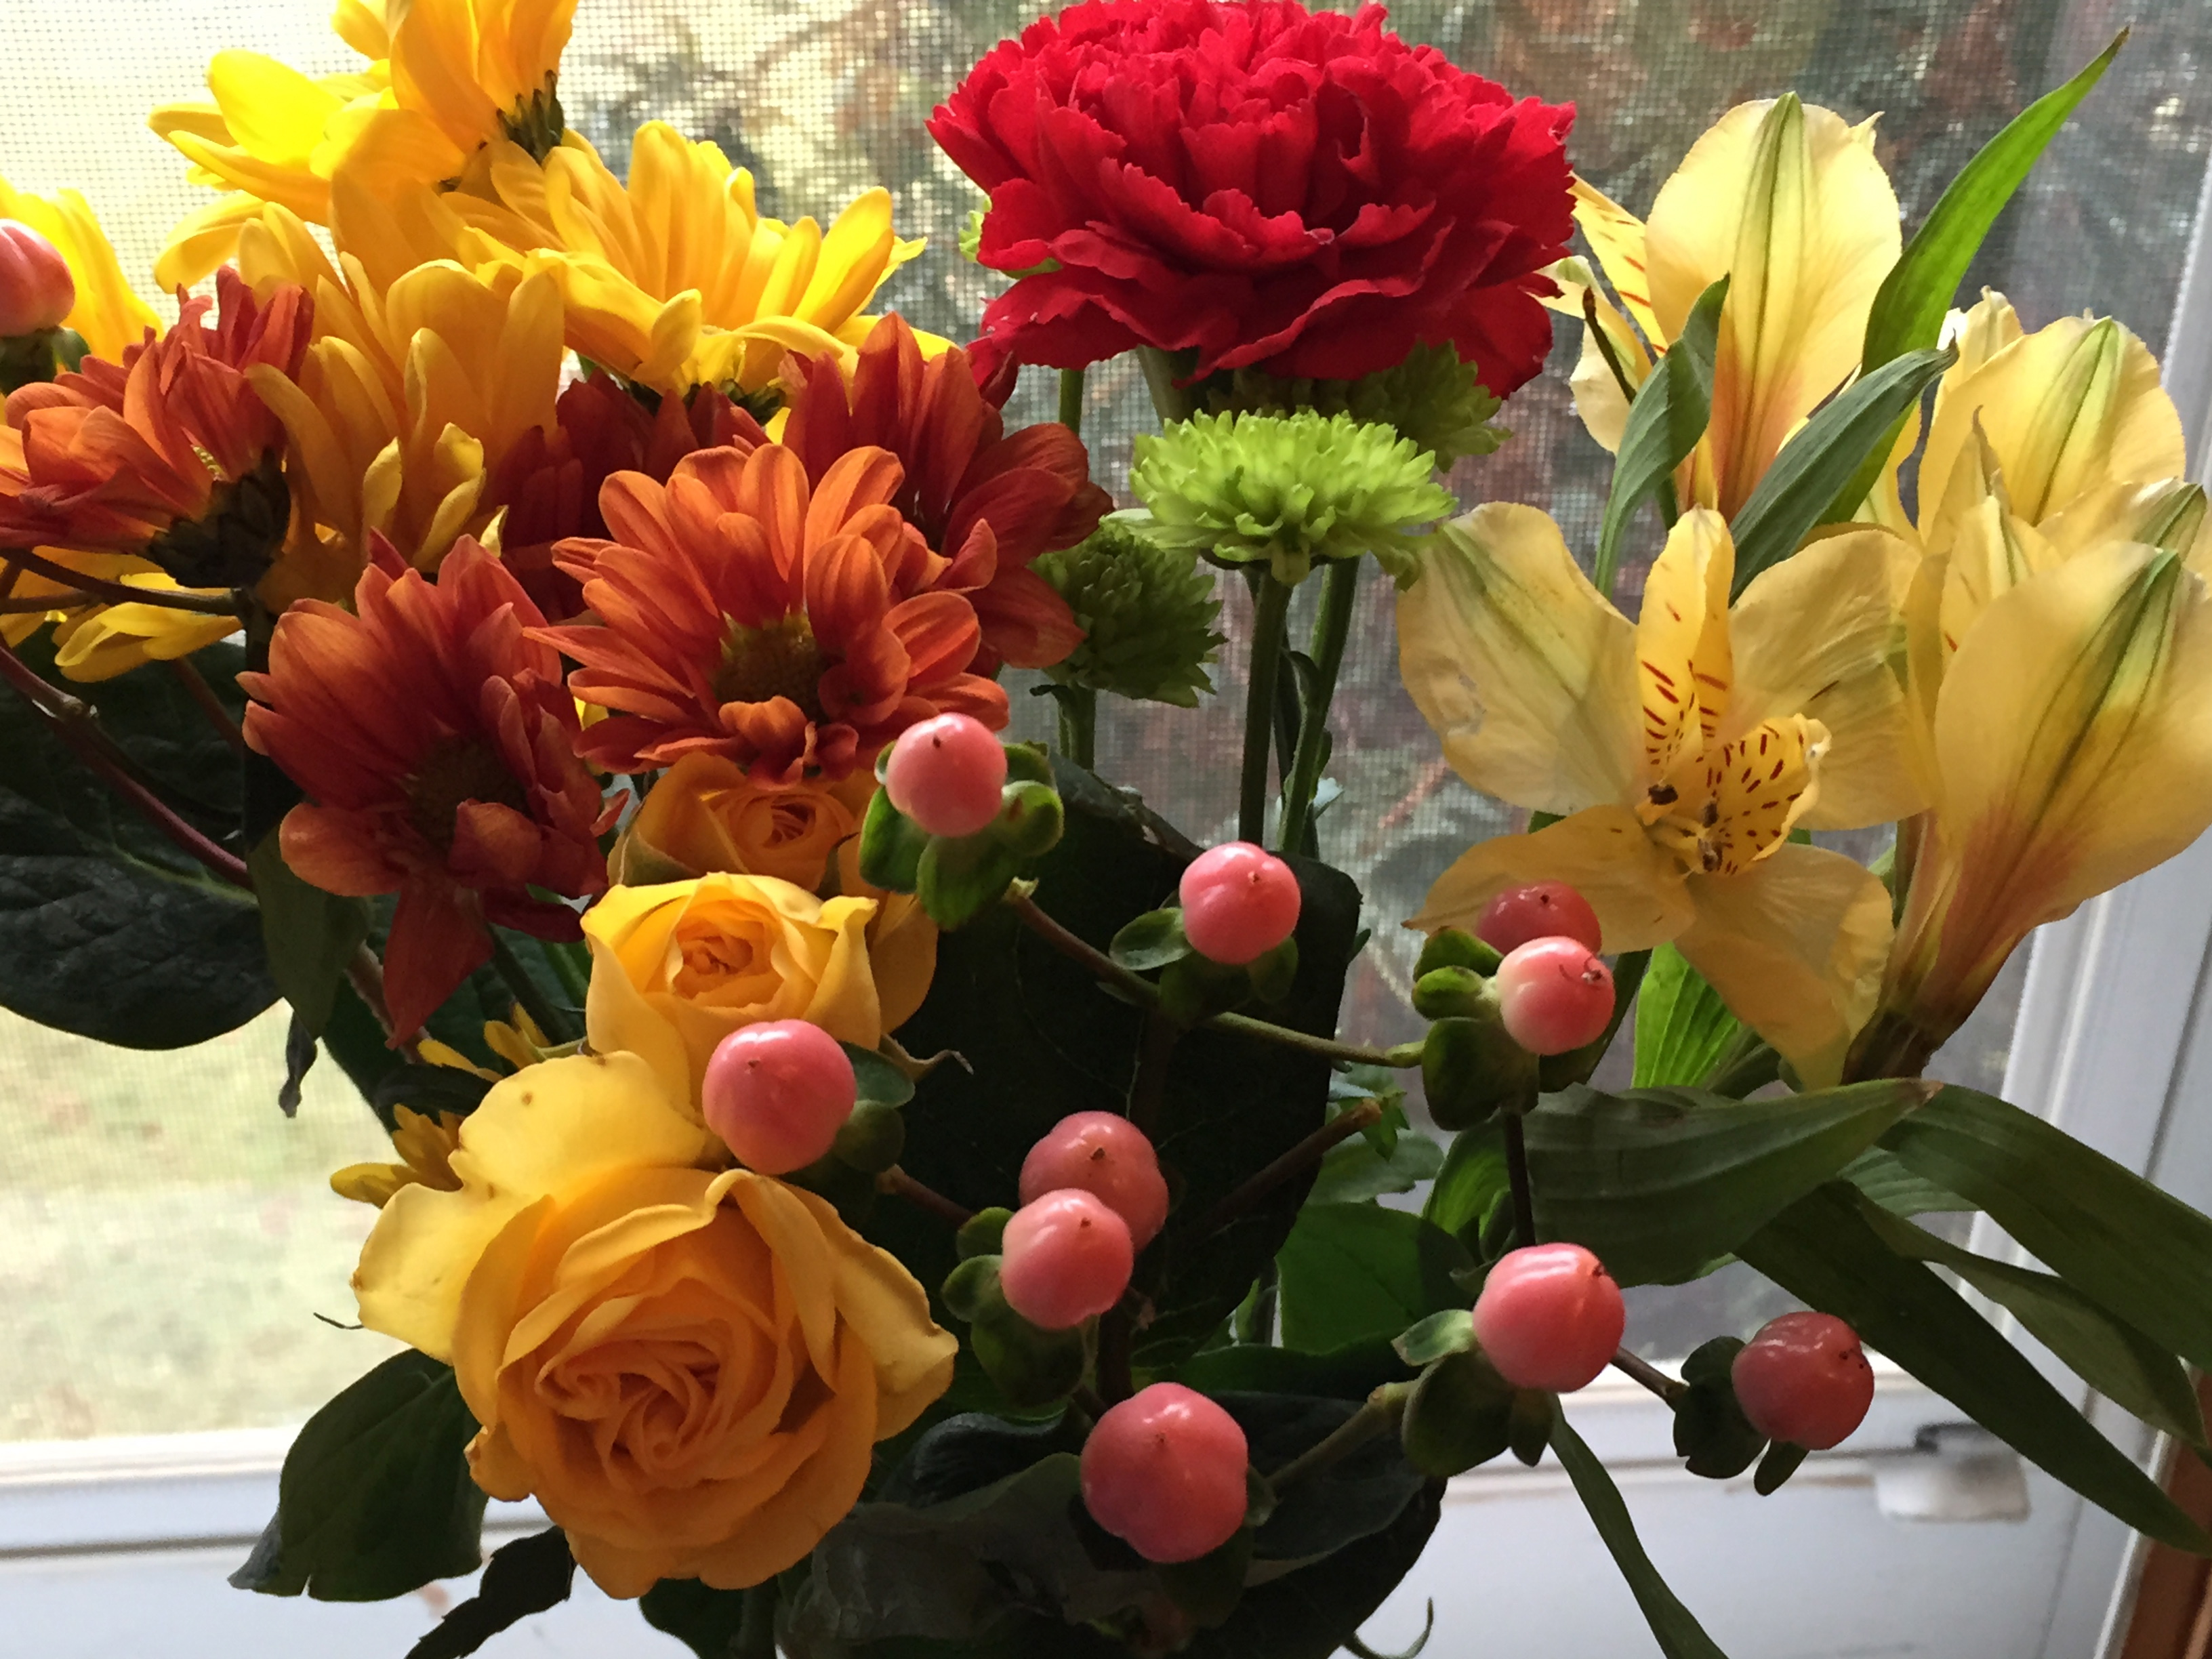 Notes From the fice This Week's Fresh Cut Flowers